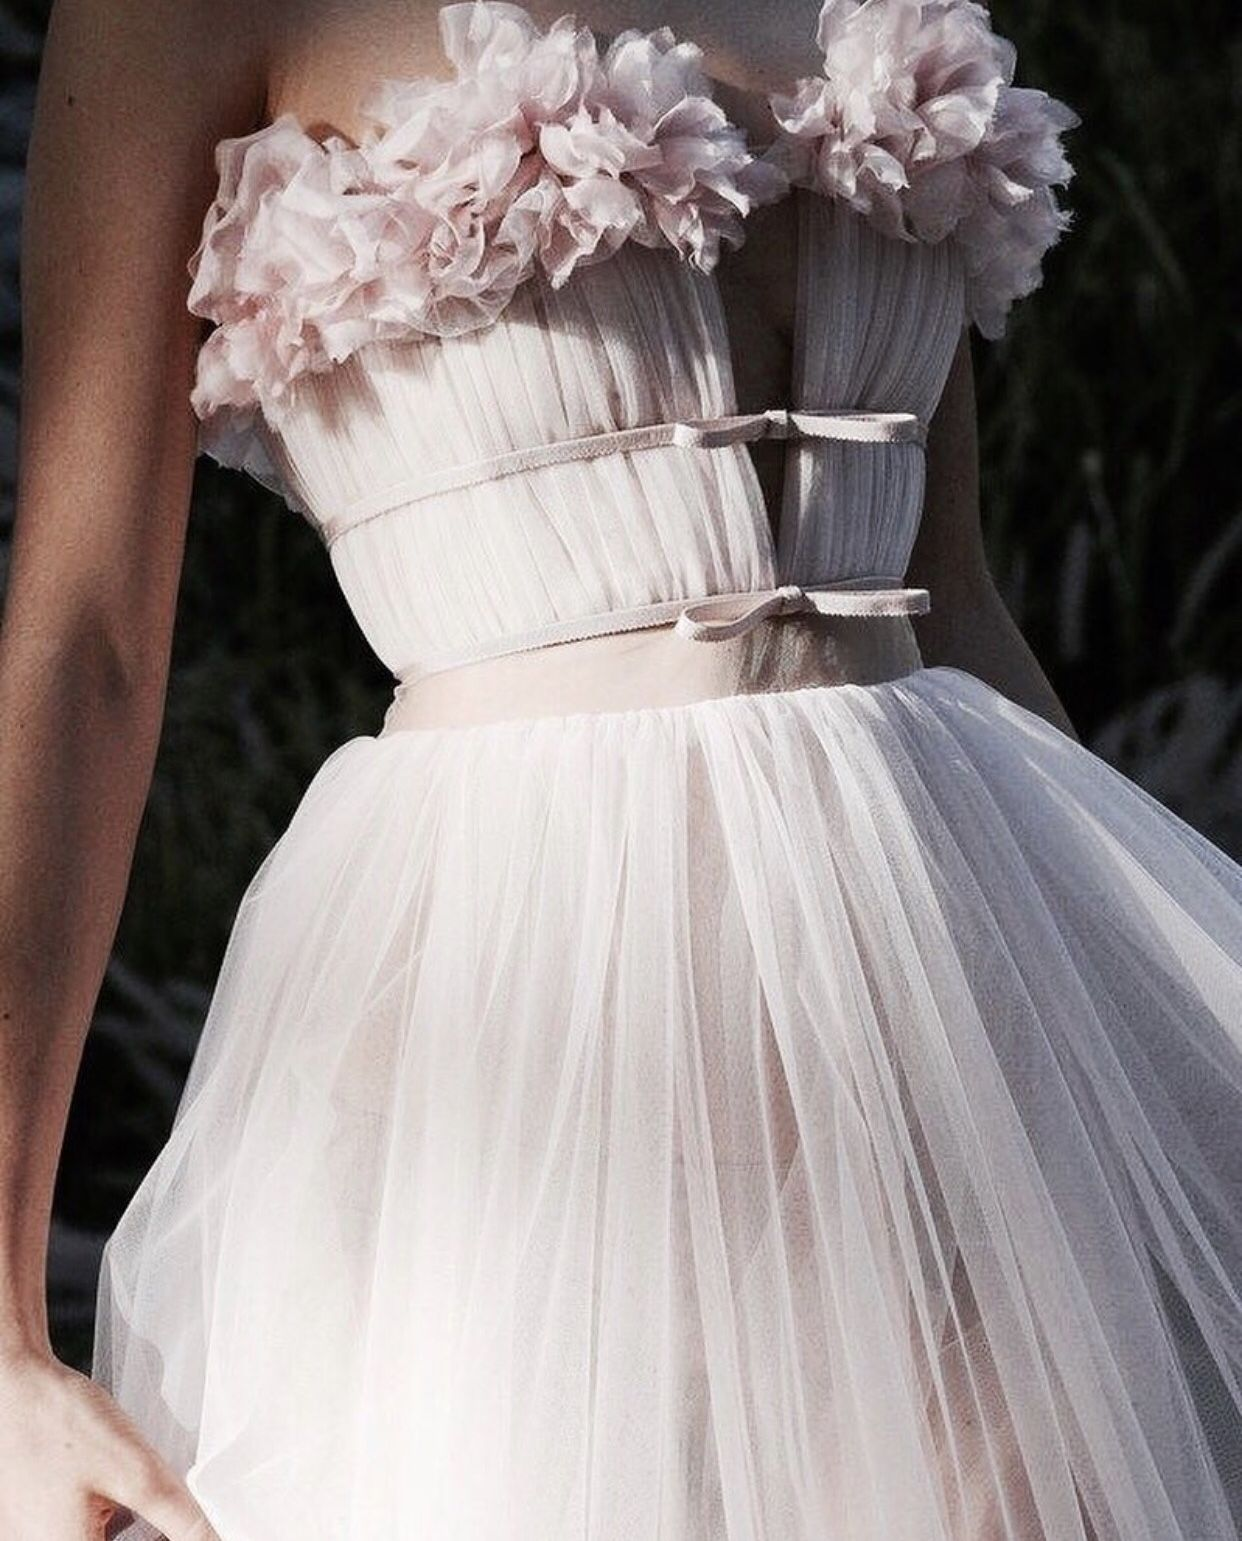 Most revealing wedding dresses ever  Pin by Miranda Bateman on Elegant Dresses  Pinterest  Gowns Prom